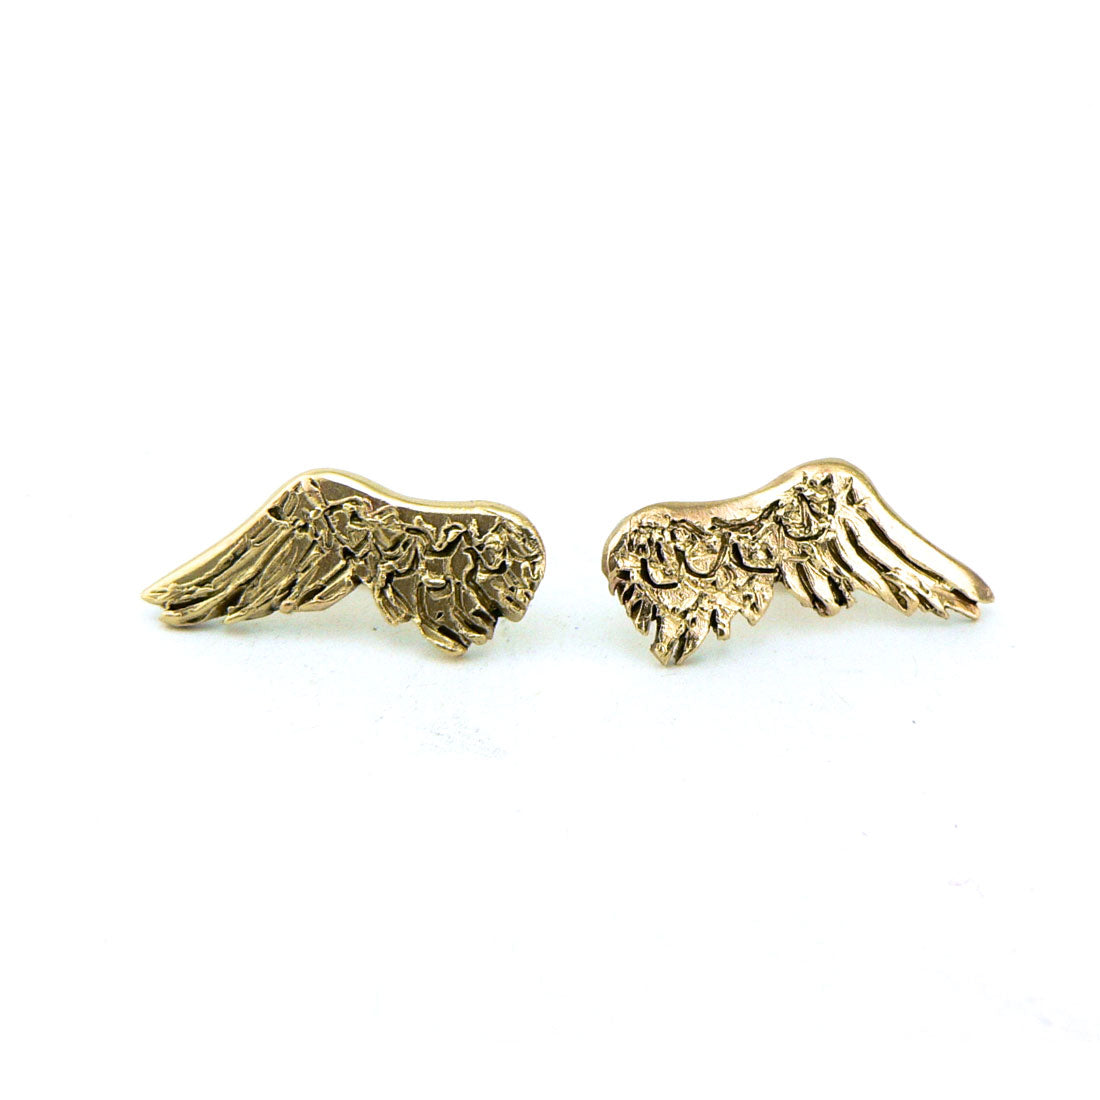 wing earrings in 9ct yellow gold, bespoke custom handmade